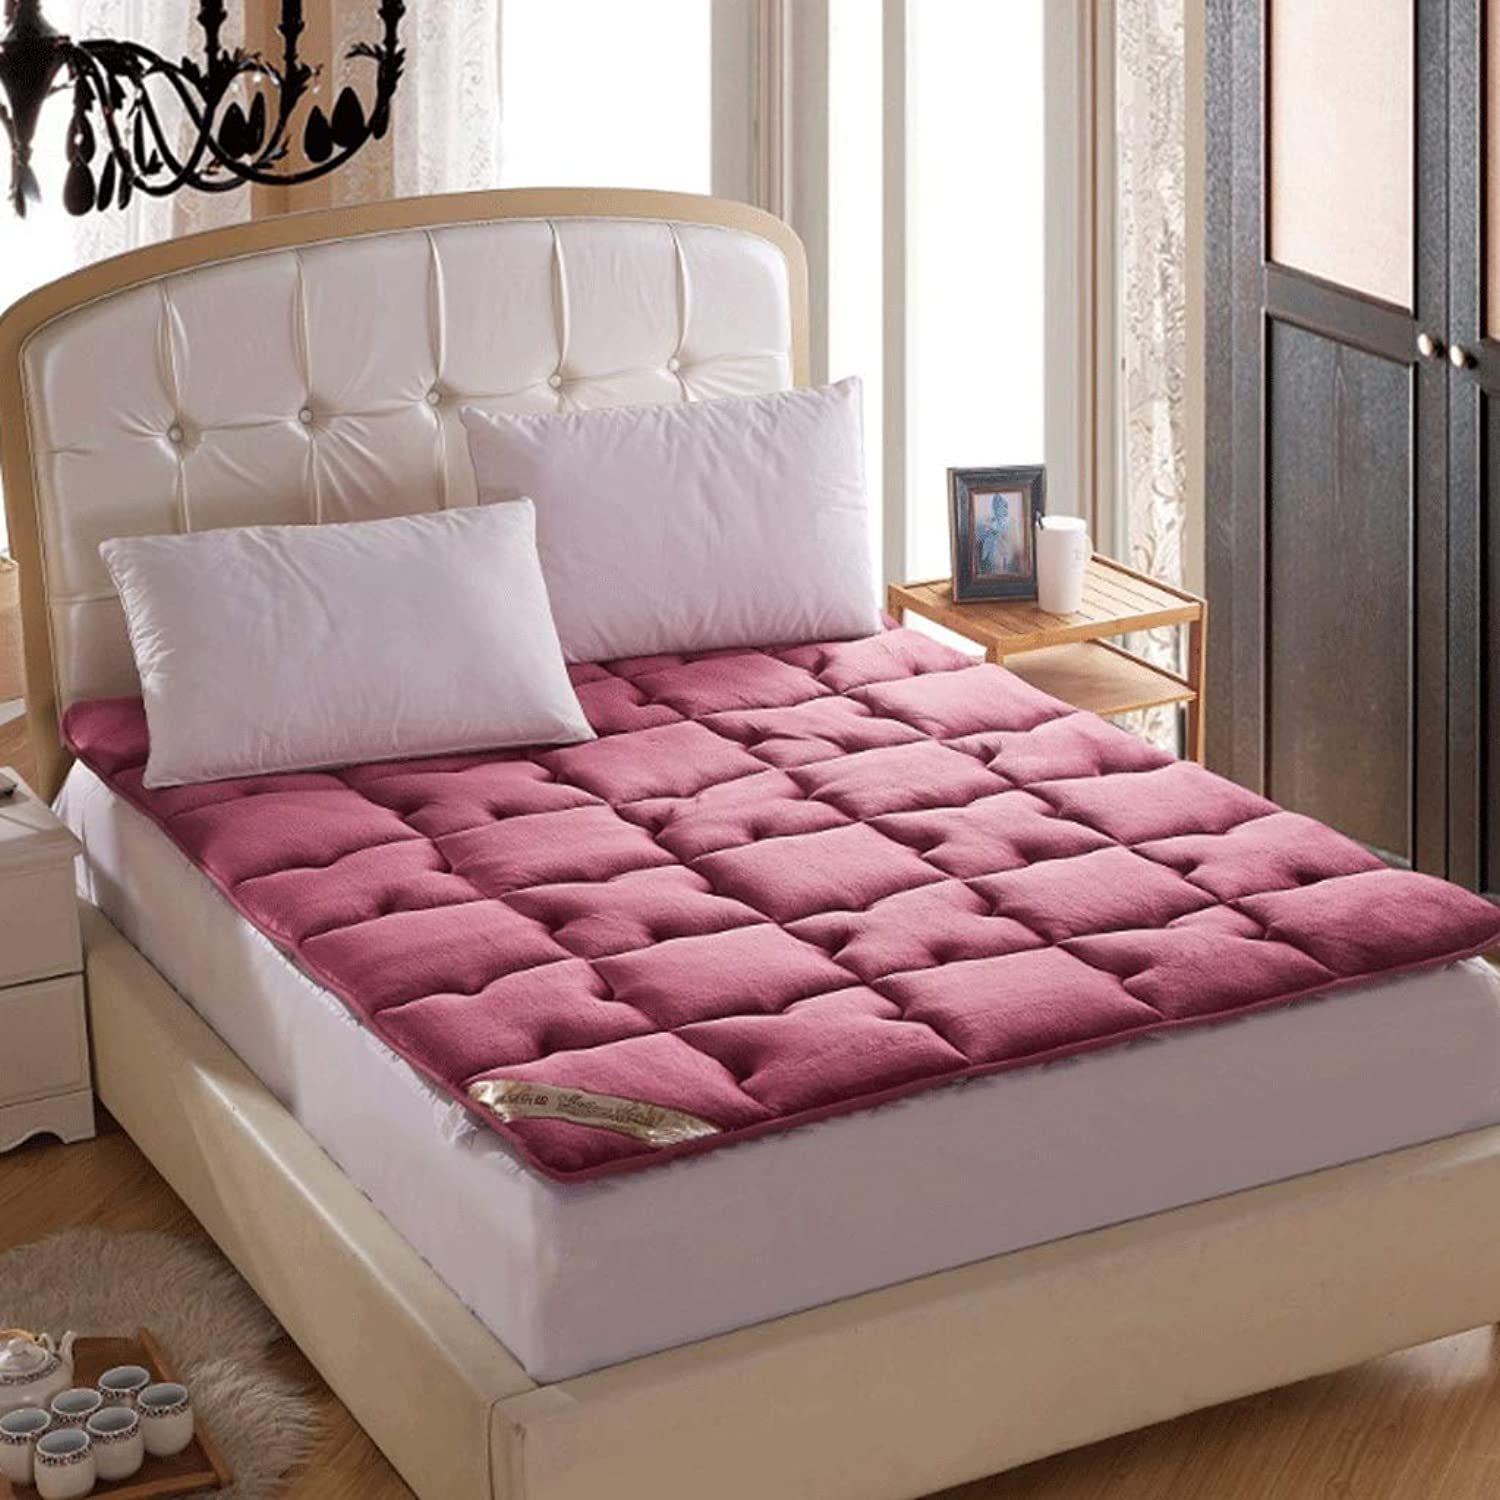 Thick Warm Tatami Mattress Foldable Single Double Household Mat (color   2, Size   90x200cm)